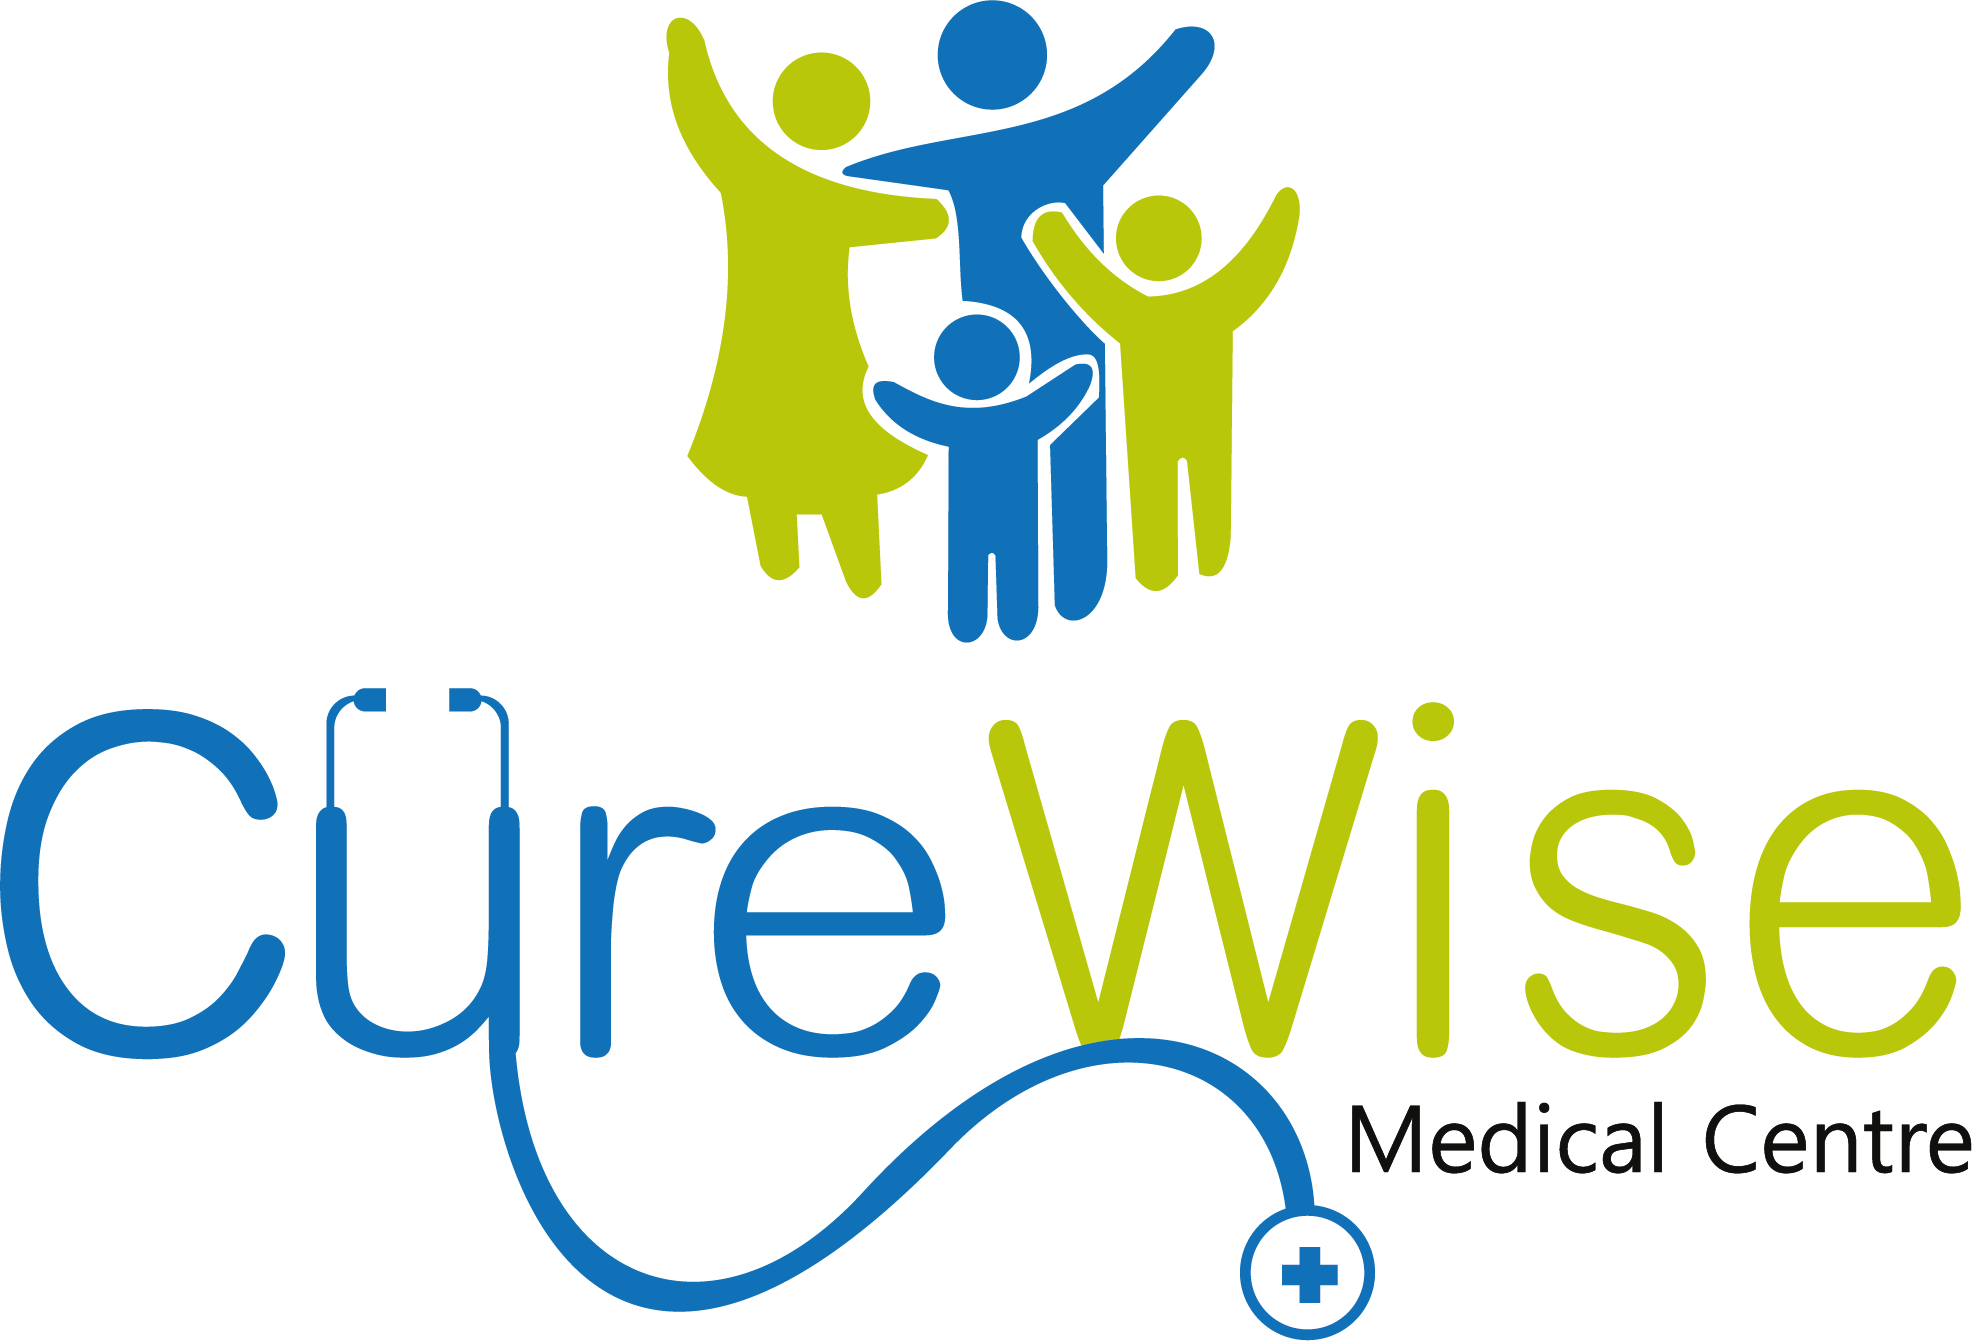 CureWise Medical Centre